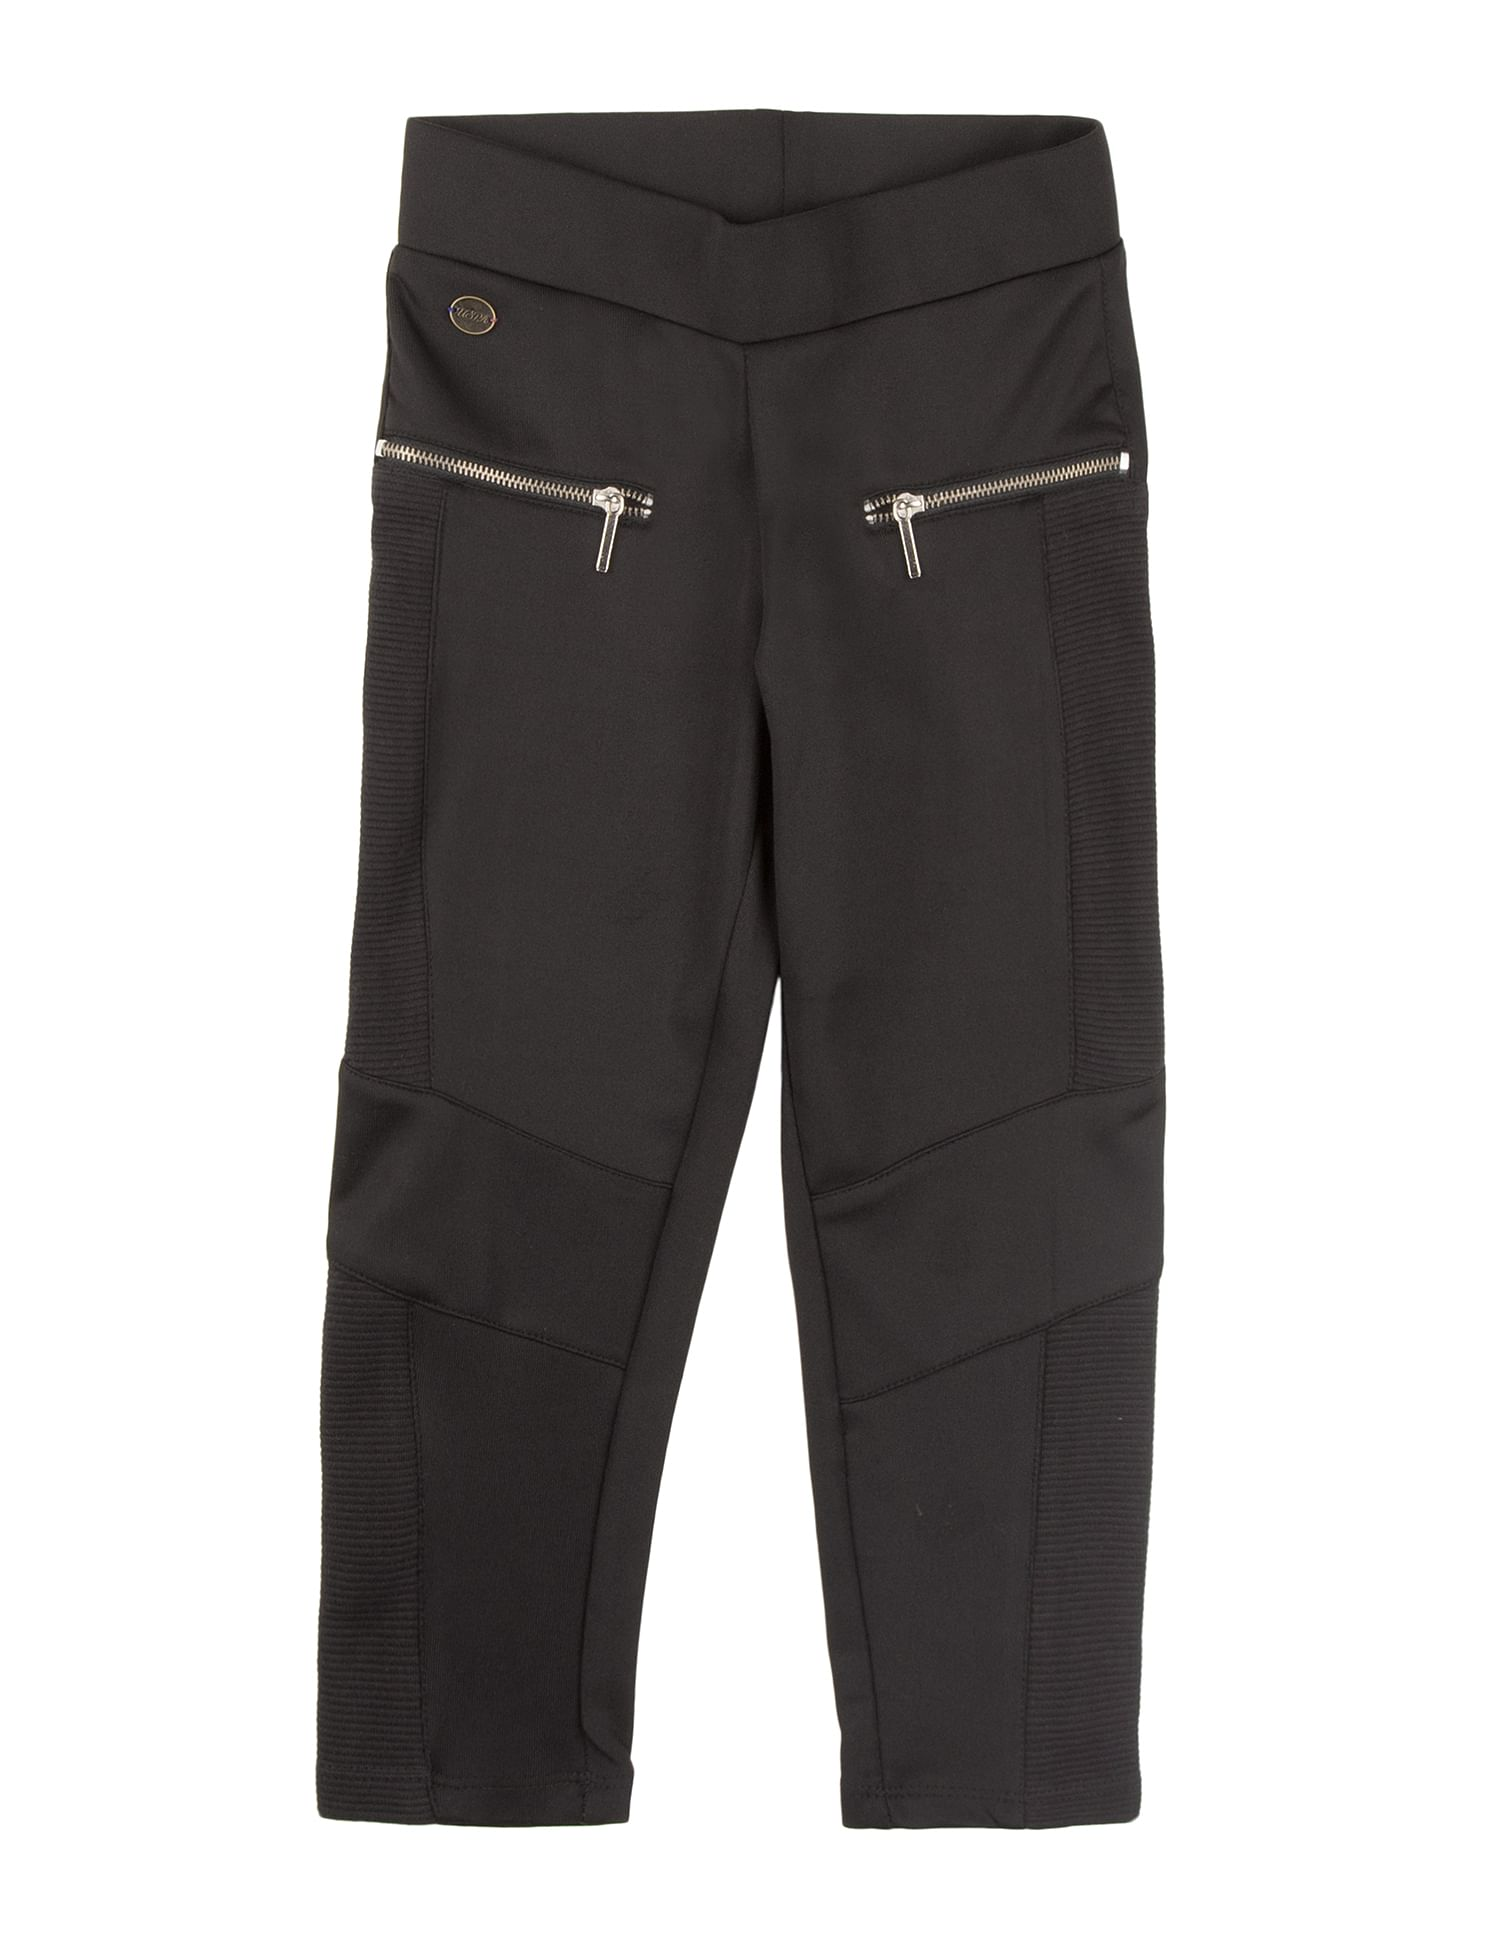 U.S. Polo Assn. Casual Wear Solid Girls Track Pant